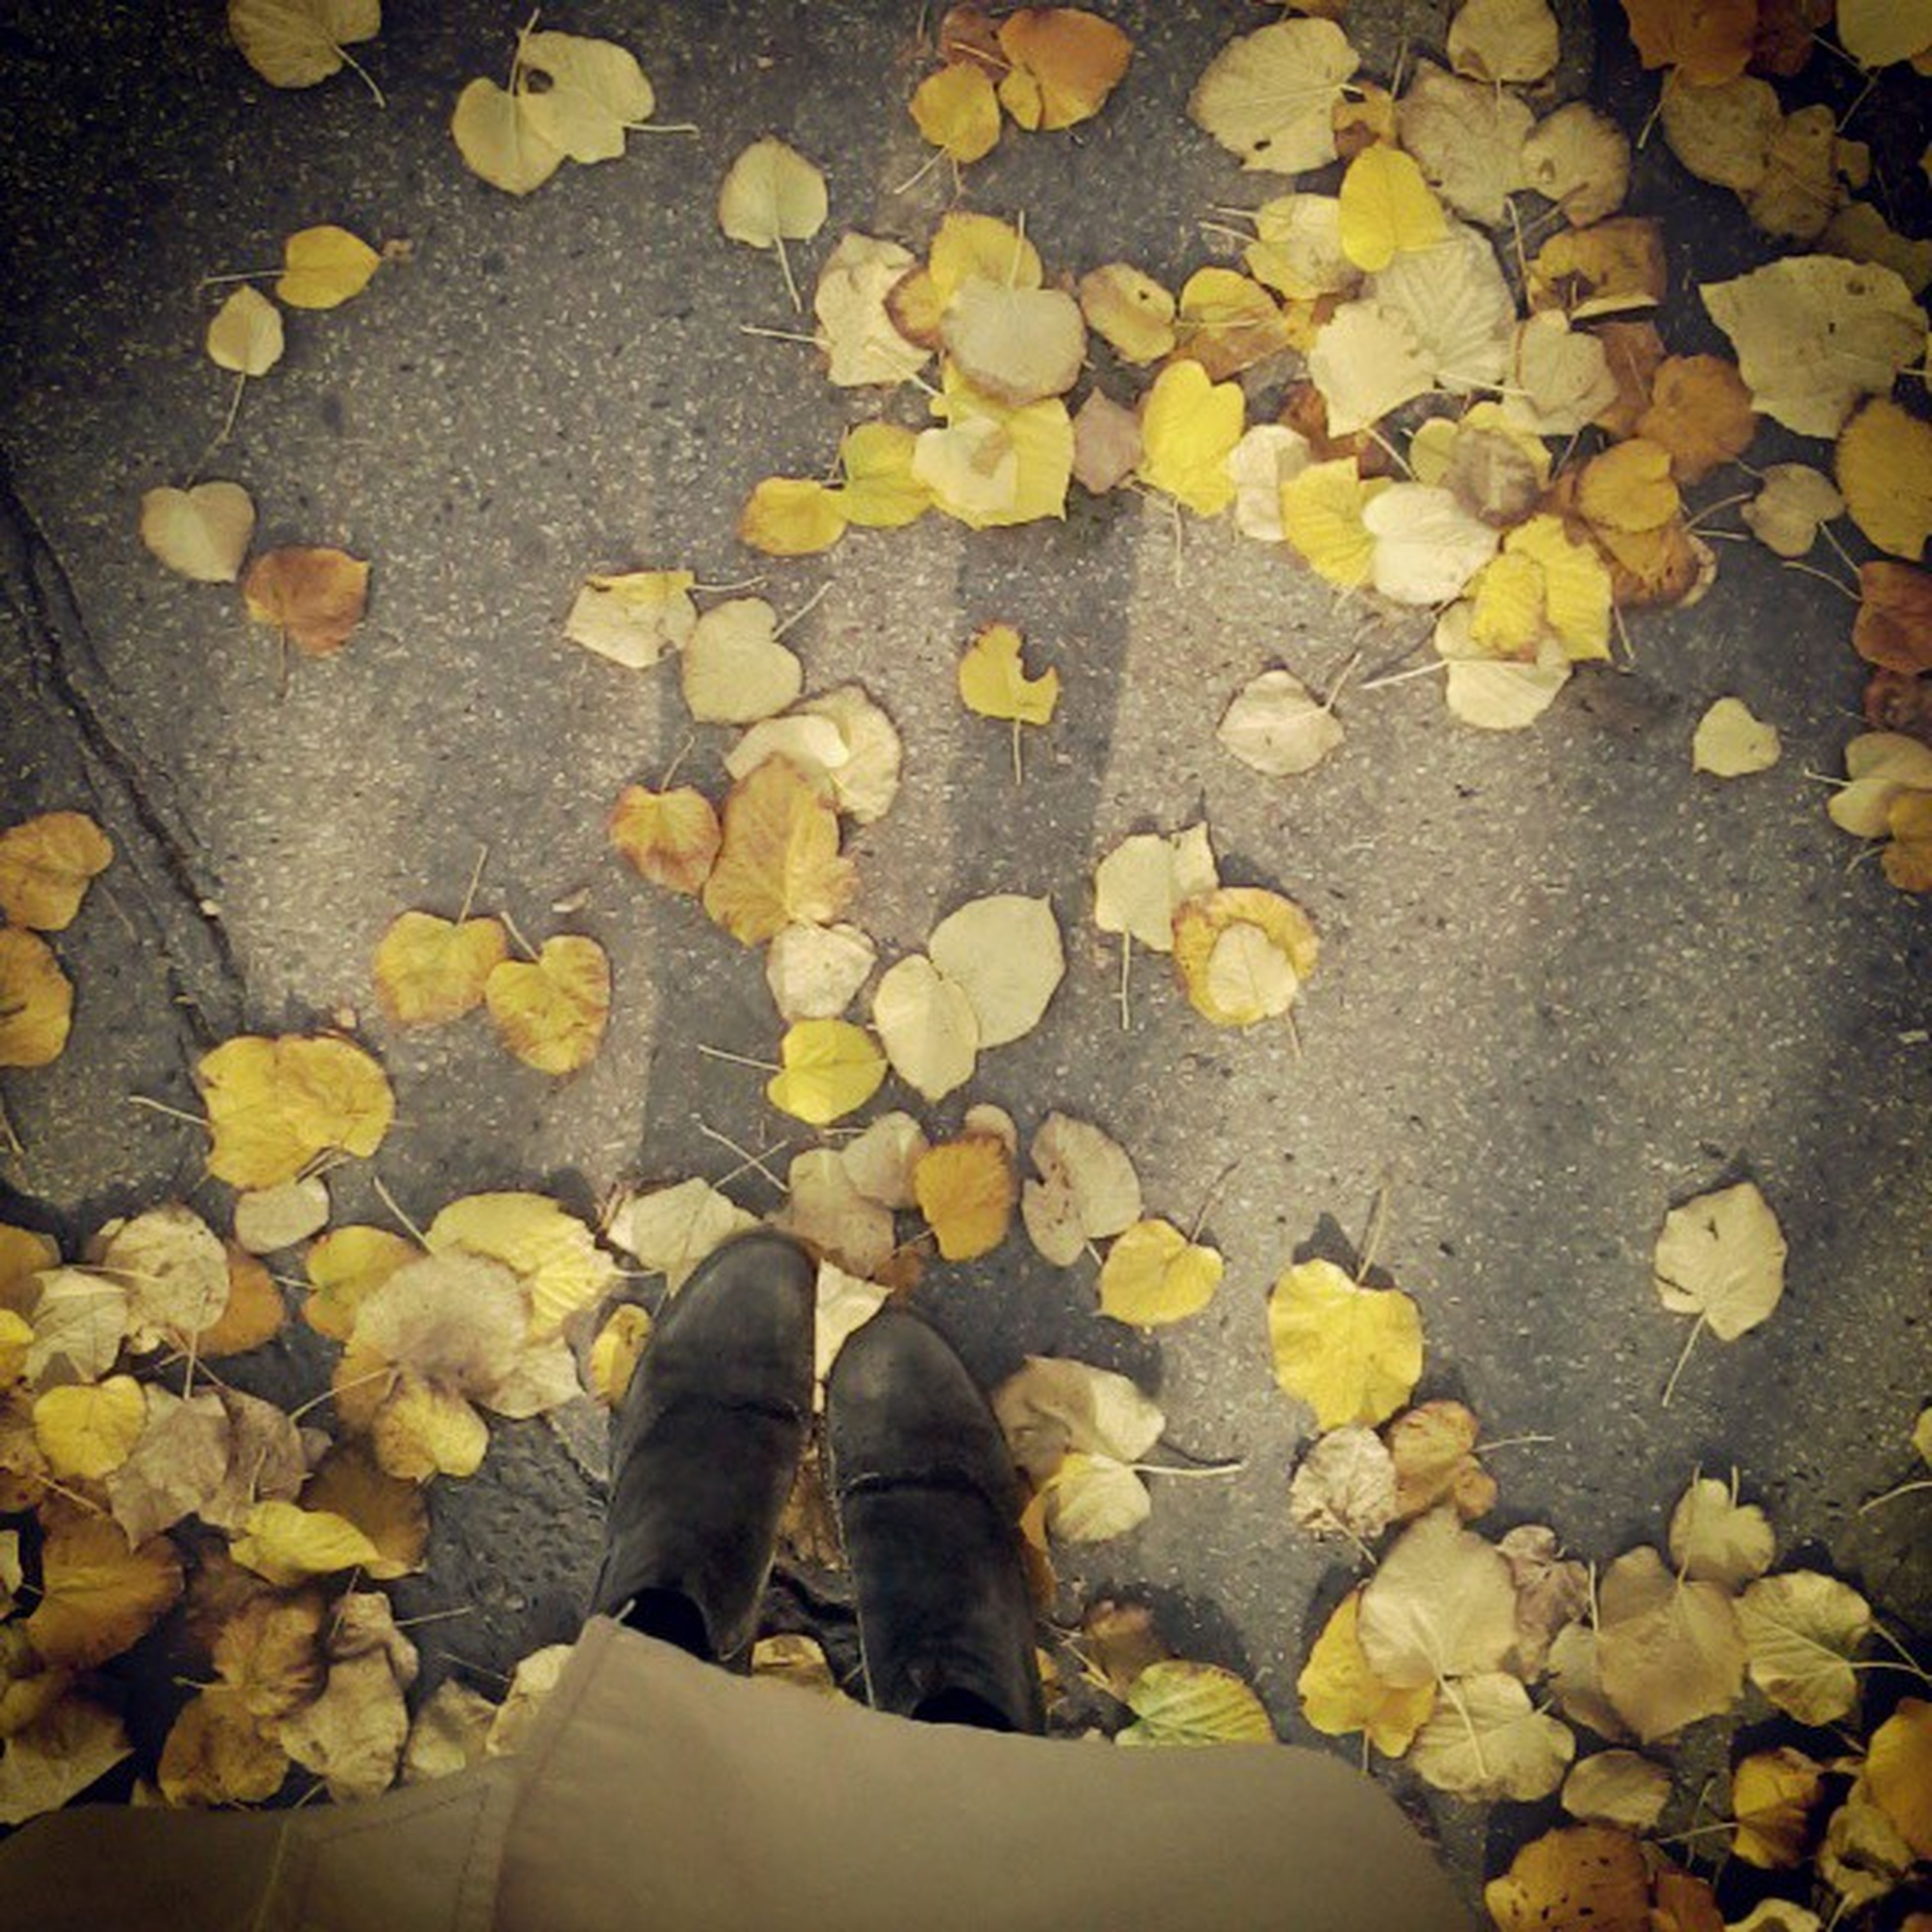 low section, person, shoe, high angle view, standing, leaf, autumn, lifestyles, personal perspective, yellow, men, leisure activity, unrecognizable person, change, season, fallen, leaves